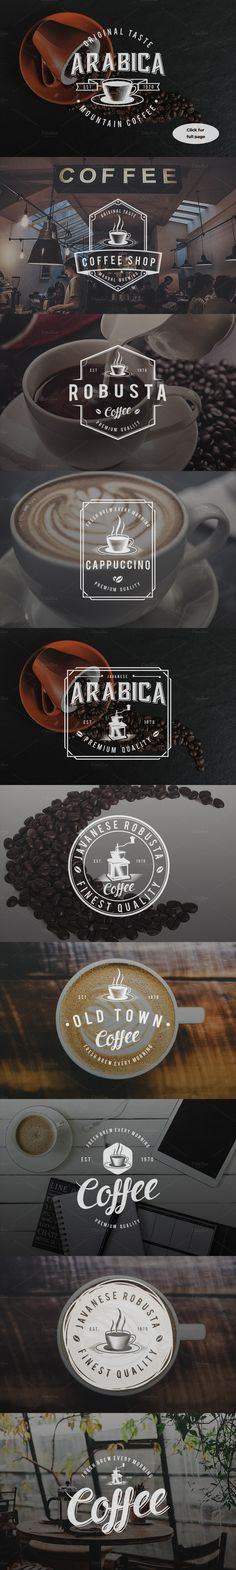 10 Vintage Coffee Logo Badges: logo templates perfect for branding a coffee shop ☕️                                                                                                                                                                                 Más